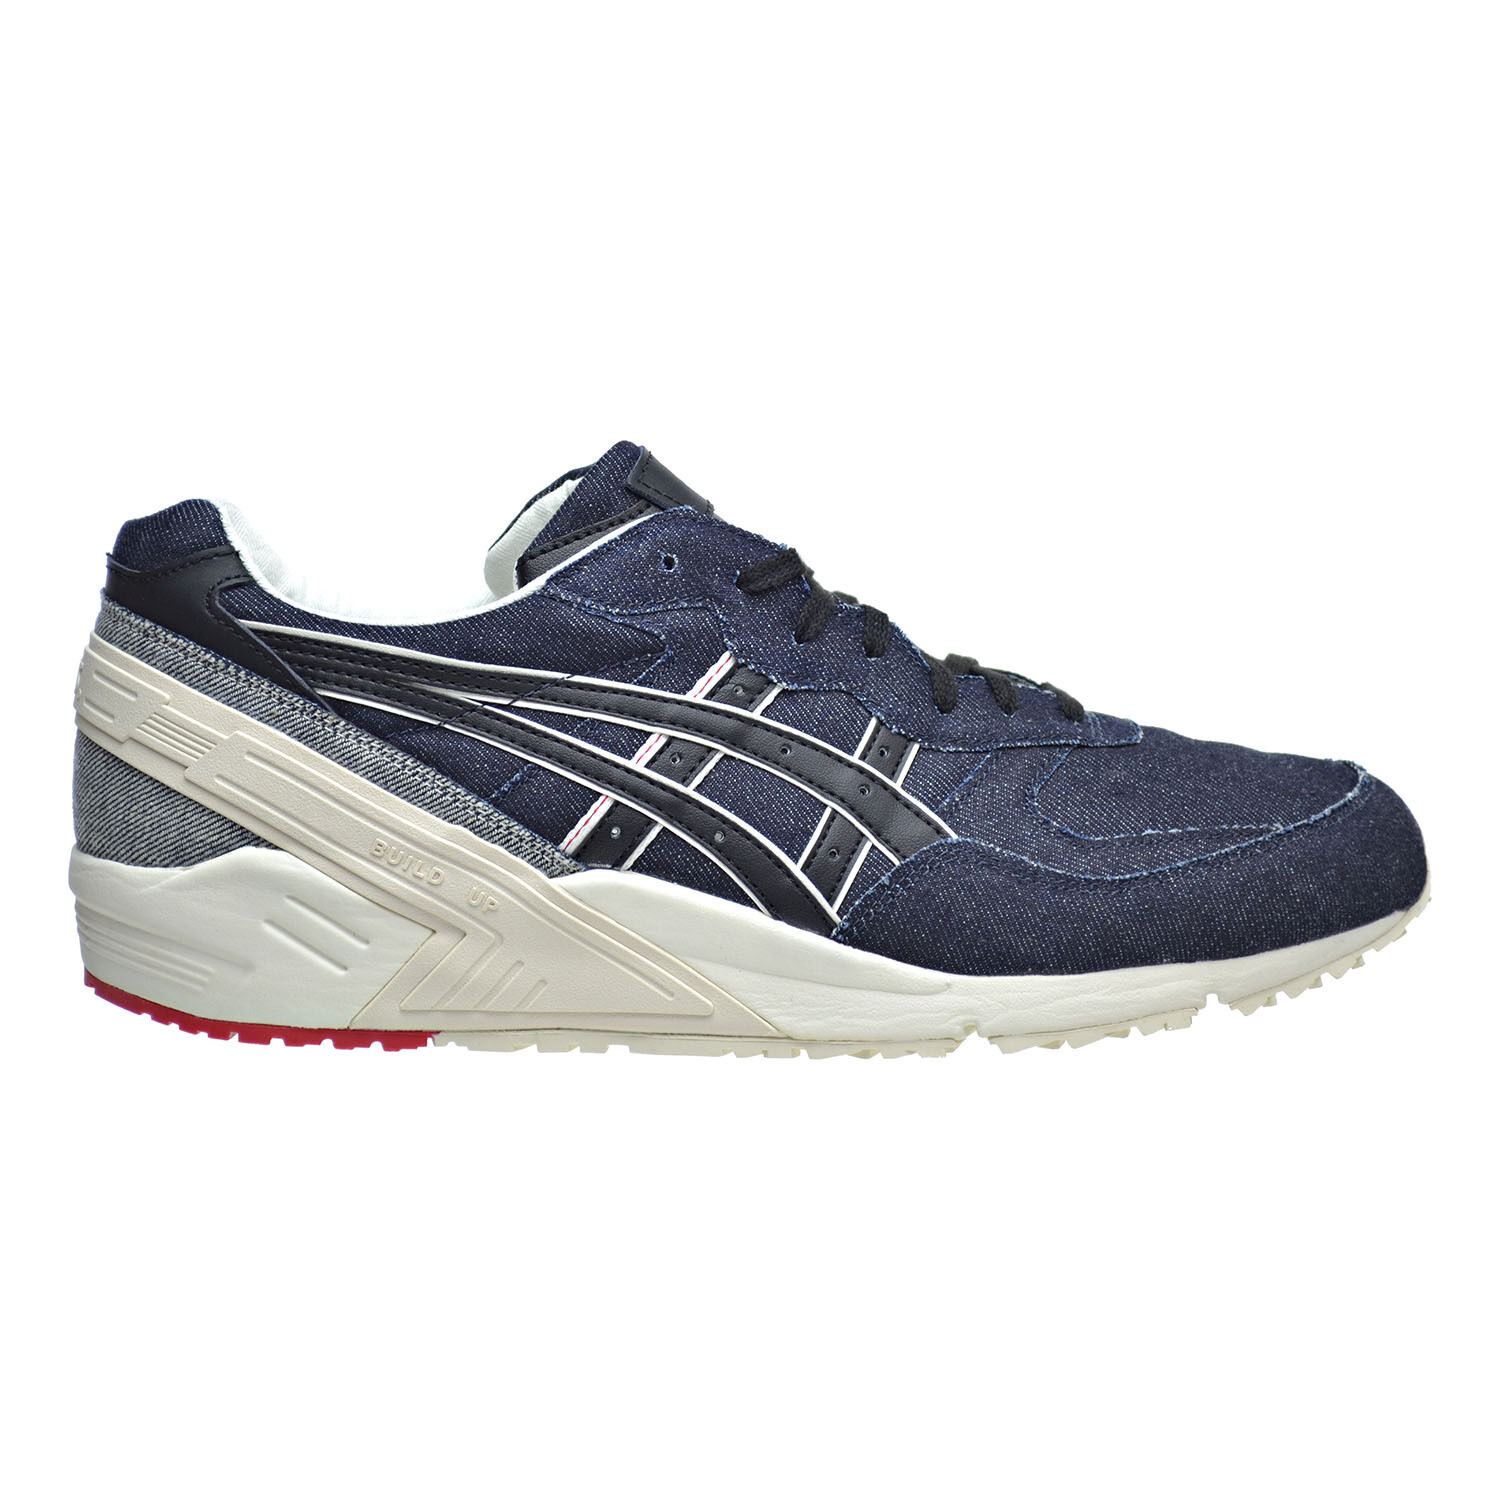 quality design d8c0b 782e3 Asics Gel-Sight